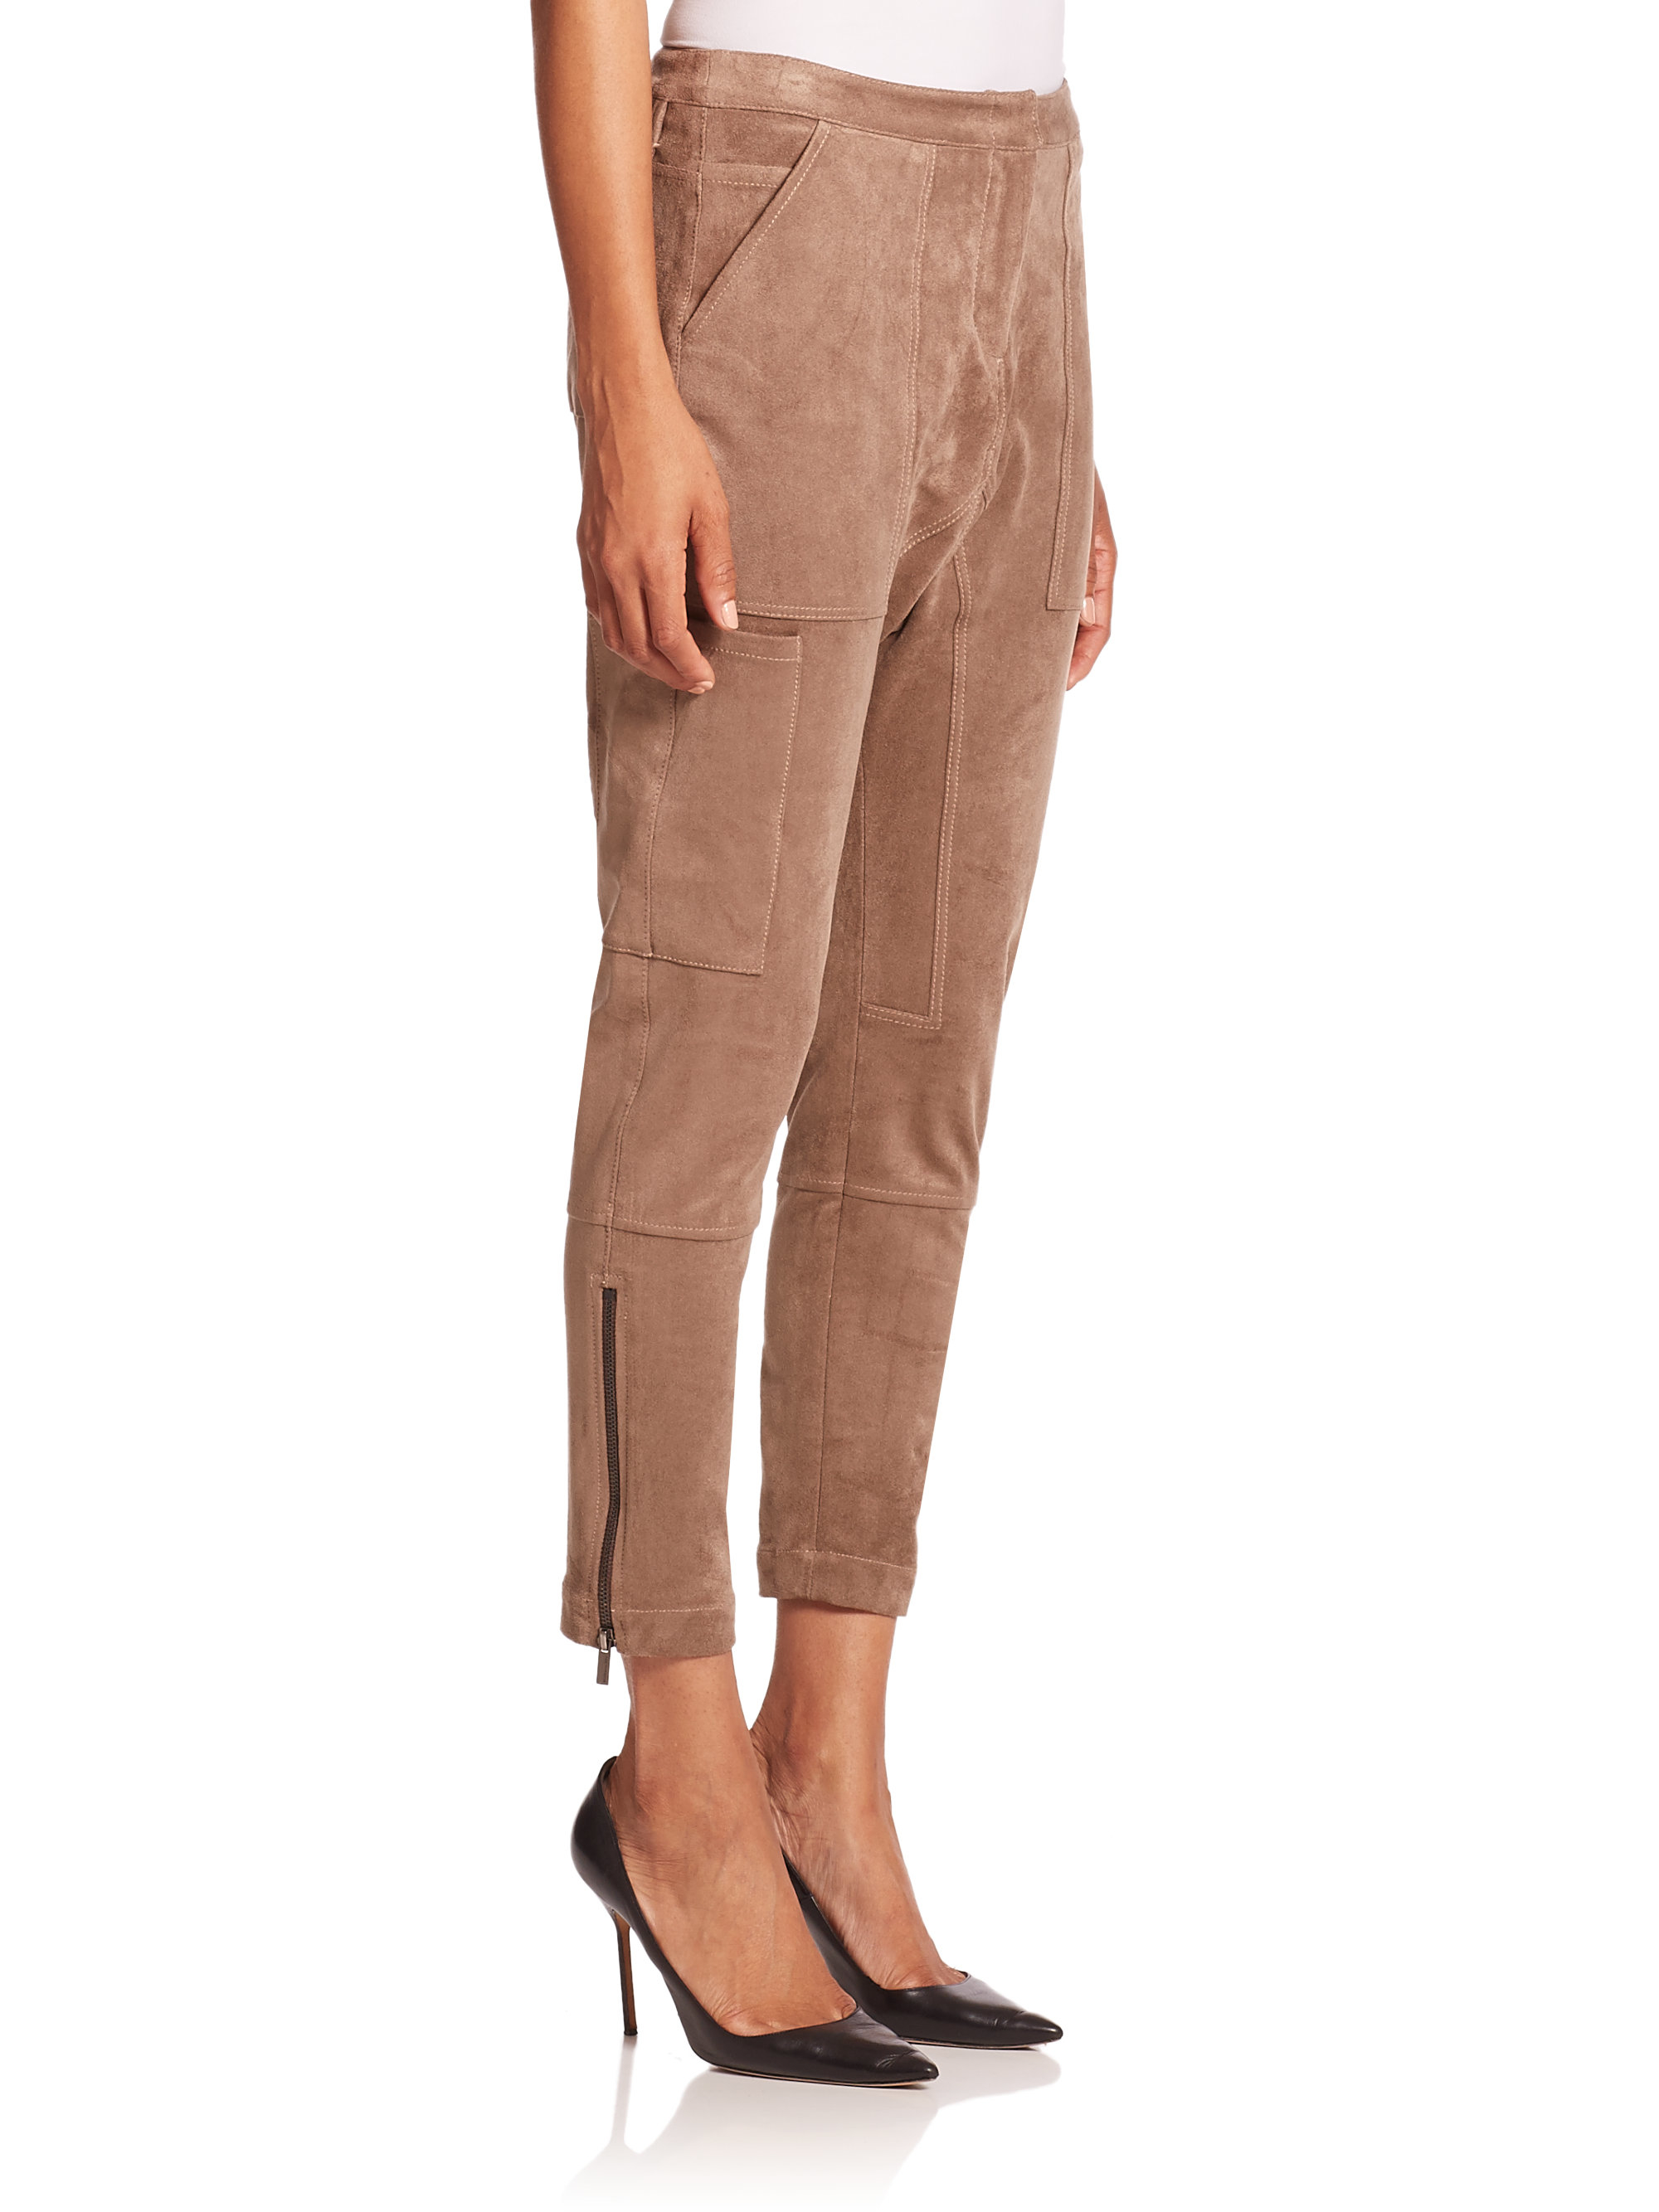 These are a beautiful pair of suede pants, but they just don't fit my waist like I would like them to, which is the reason why I'm posting them. They look kind of scraggly in a photos because suede at.